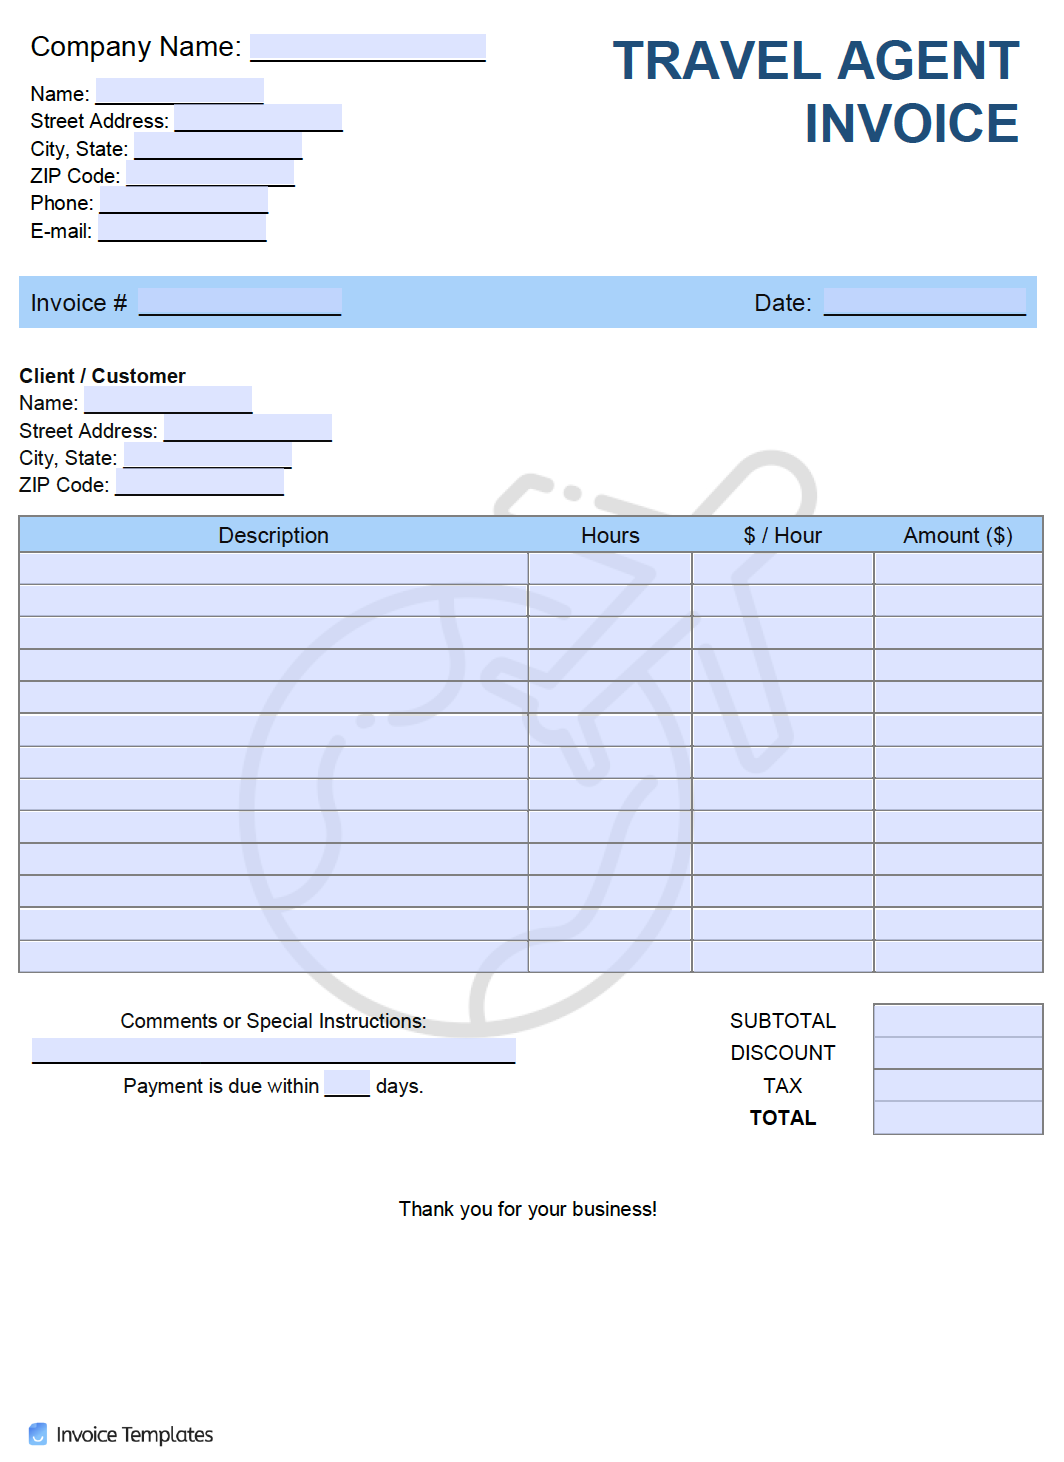 Free Travel Agent Invoice Template Pdf Word Excel